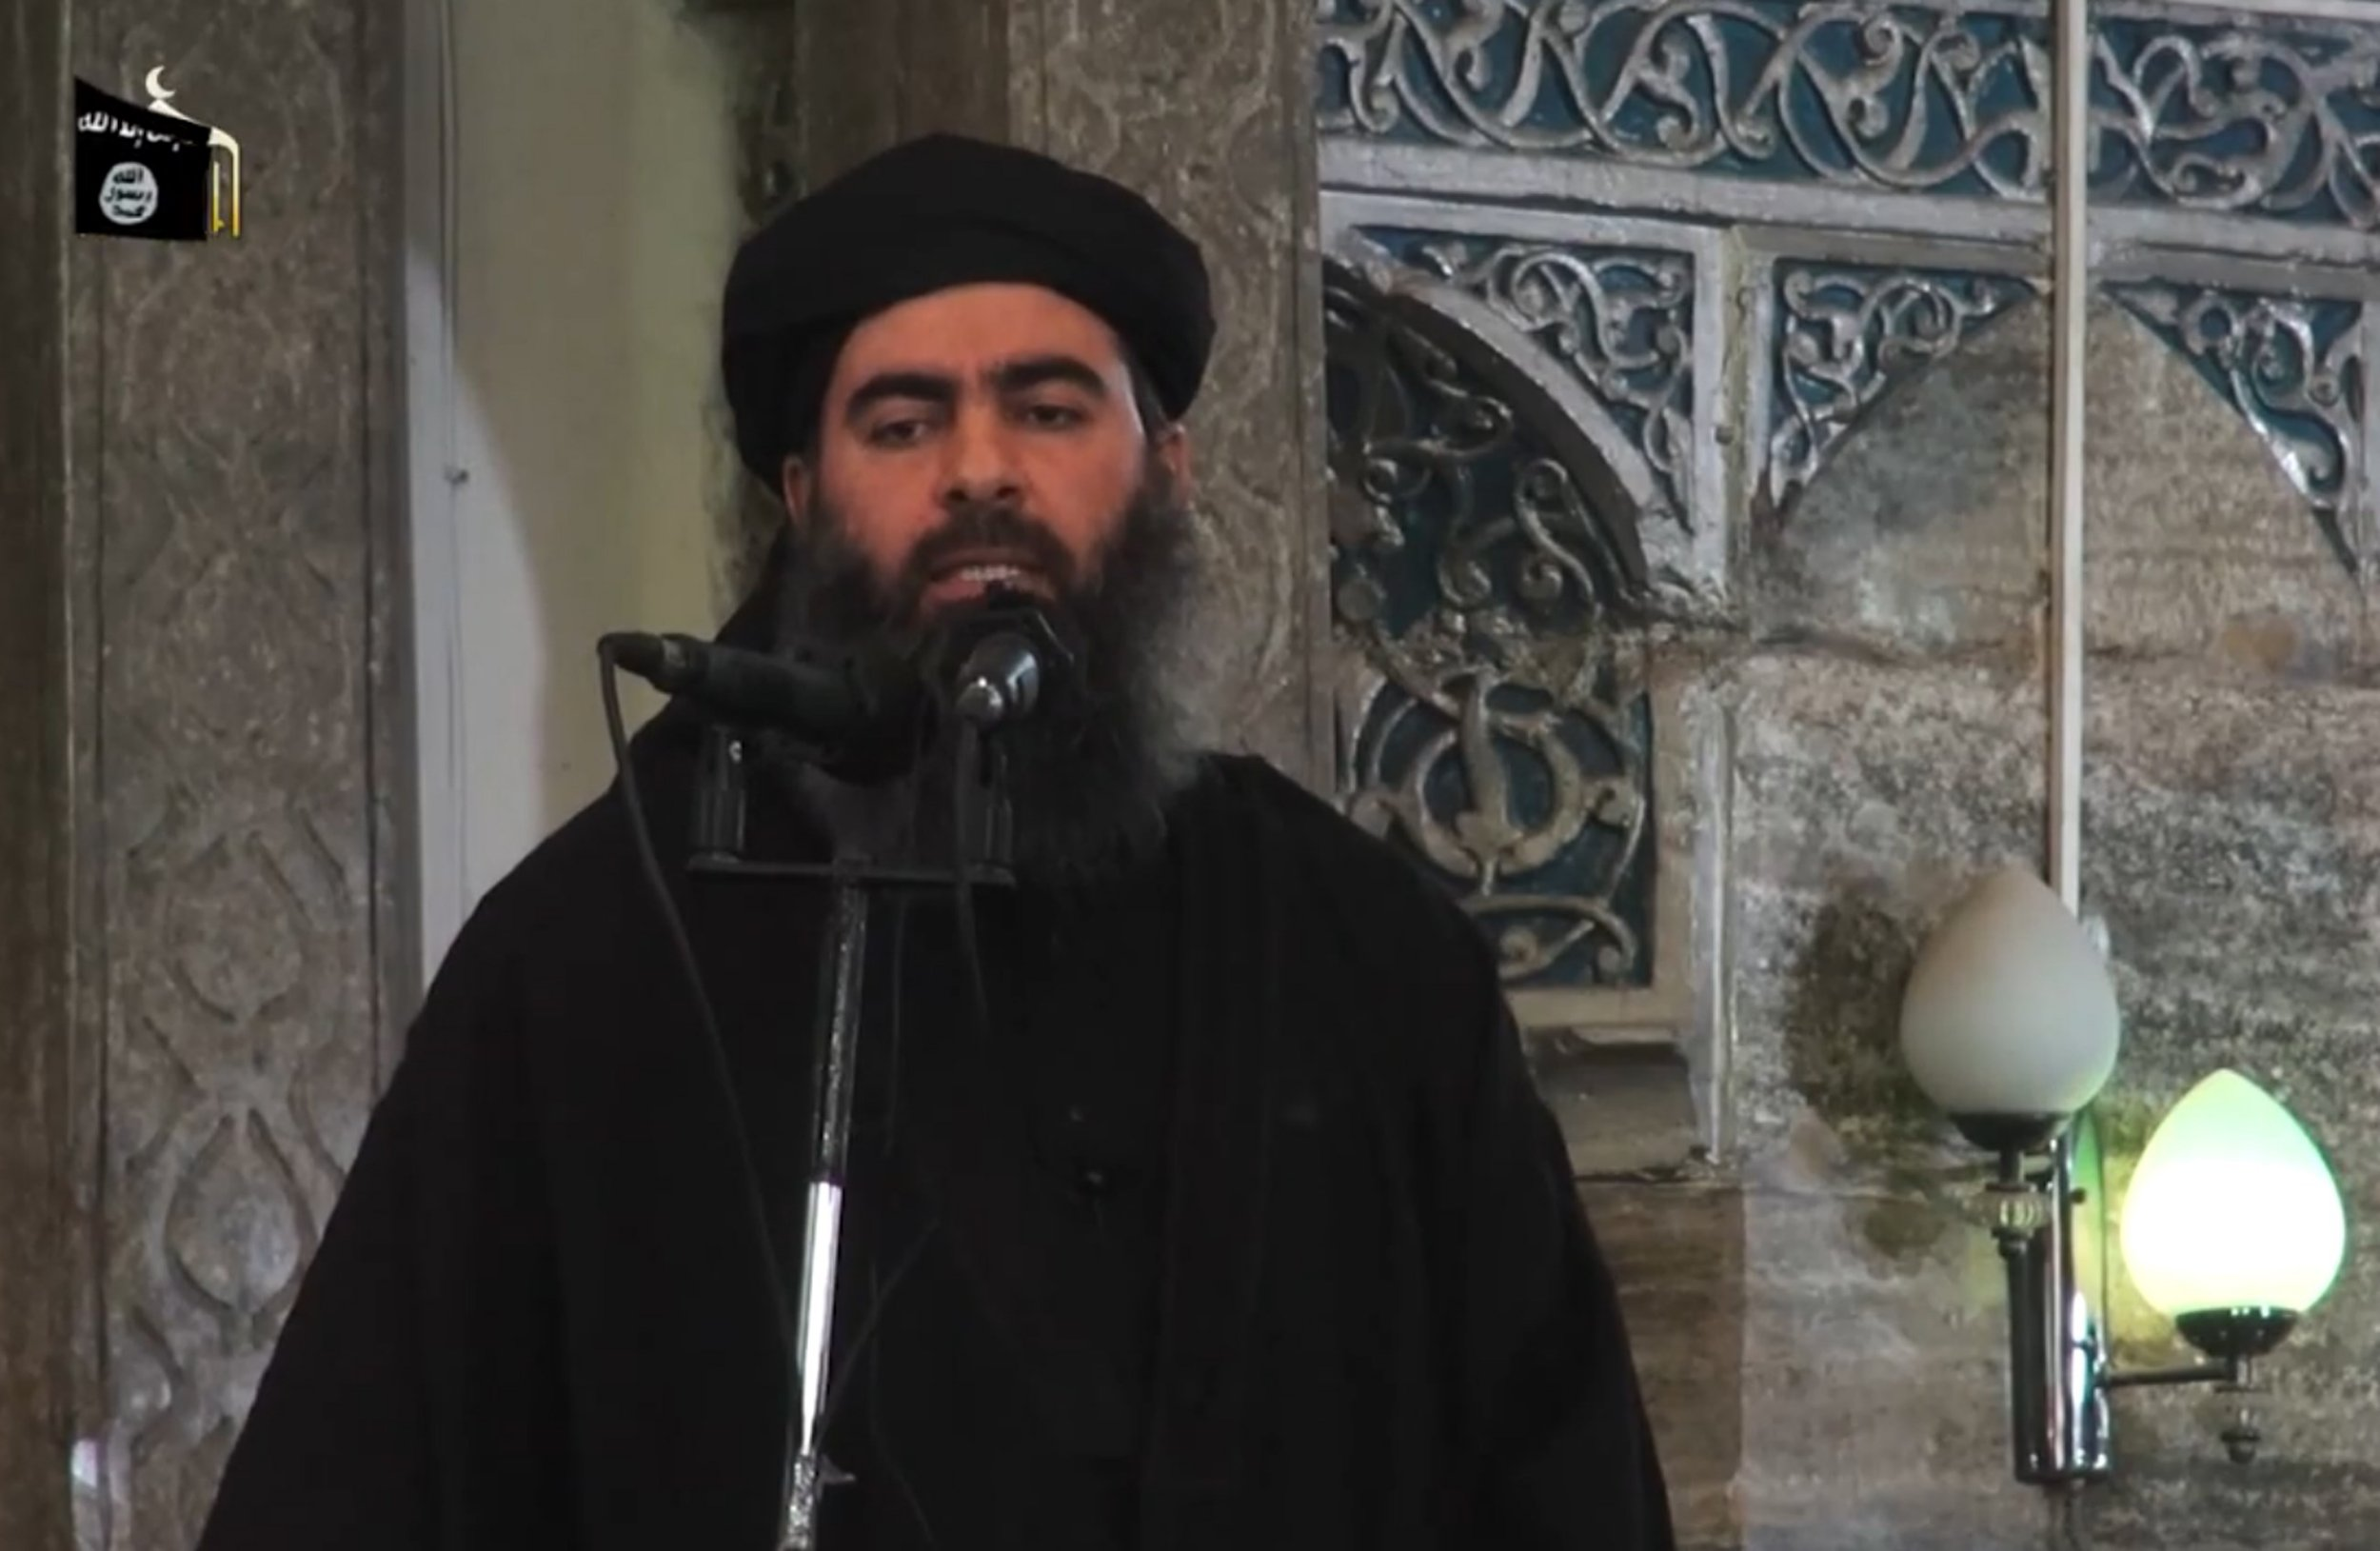 """Leader of the Islamic State (IS) jihadist group, Abu Bakr al-Baghdadi, adressing Muslim worshippers at a mosque in the militant-held northern Iraqi city of Mosul. Iraq claimed on October 11, 2015 to have struck a convoy carrying Islamic State group leader Abu Bakr al-Baghdadi in an air raid near the Syrian border but said his fate was unknown. (FILES) An image grab taken from a propaganda video released on July 5, 2014 by al-Furqan Media. AFP PHOTO / HO / AL-FURQAN MEDIA == RESTRICTED TO EDITORIAL USE - MANDATORY CREDIT """"AFP PHOTO / HO / AL-FURQAN MEDIA """" - NO MARKETING NO ADVERTISING CAMPAIGNS - DISTRIBUTED AS A SERVICE TO CLIENTS FROM ALTERNATIVE SOURCES, AFP IS NOT RESPONSIBLE FOR ANY DIGITAL ALTERATIONS TO THE PICTURE'S EDITORIAL CONTENT, DATE AND LOCATION WHICH CANNOT BE INDEPENDENTLY VERIFIED ==-/AFP/Getty Images"""